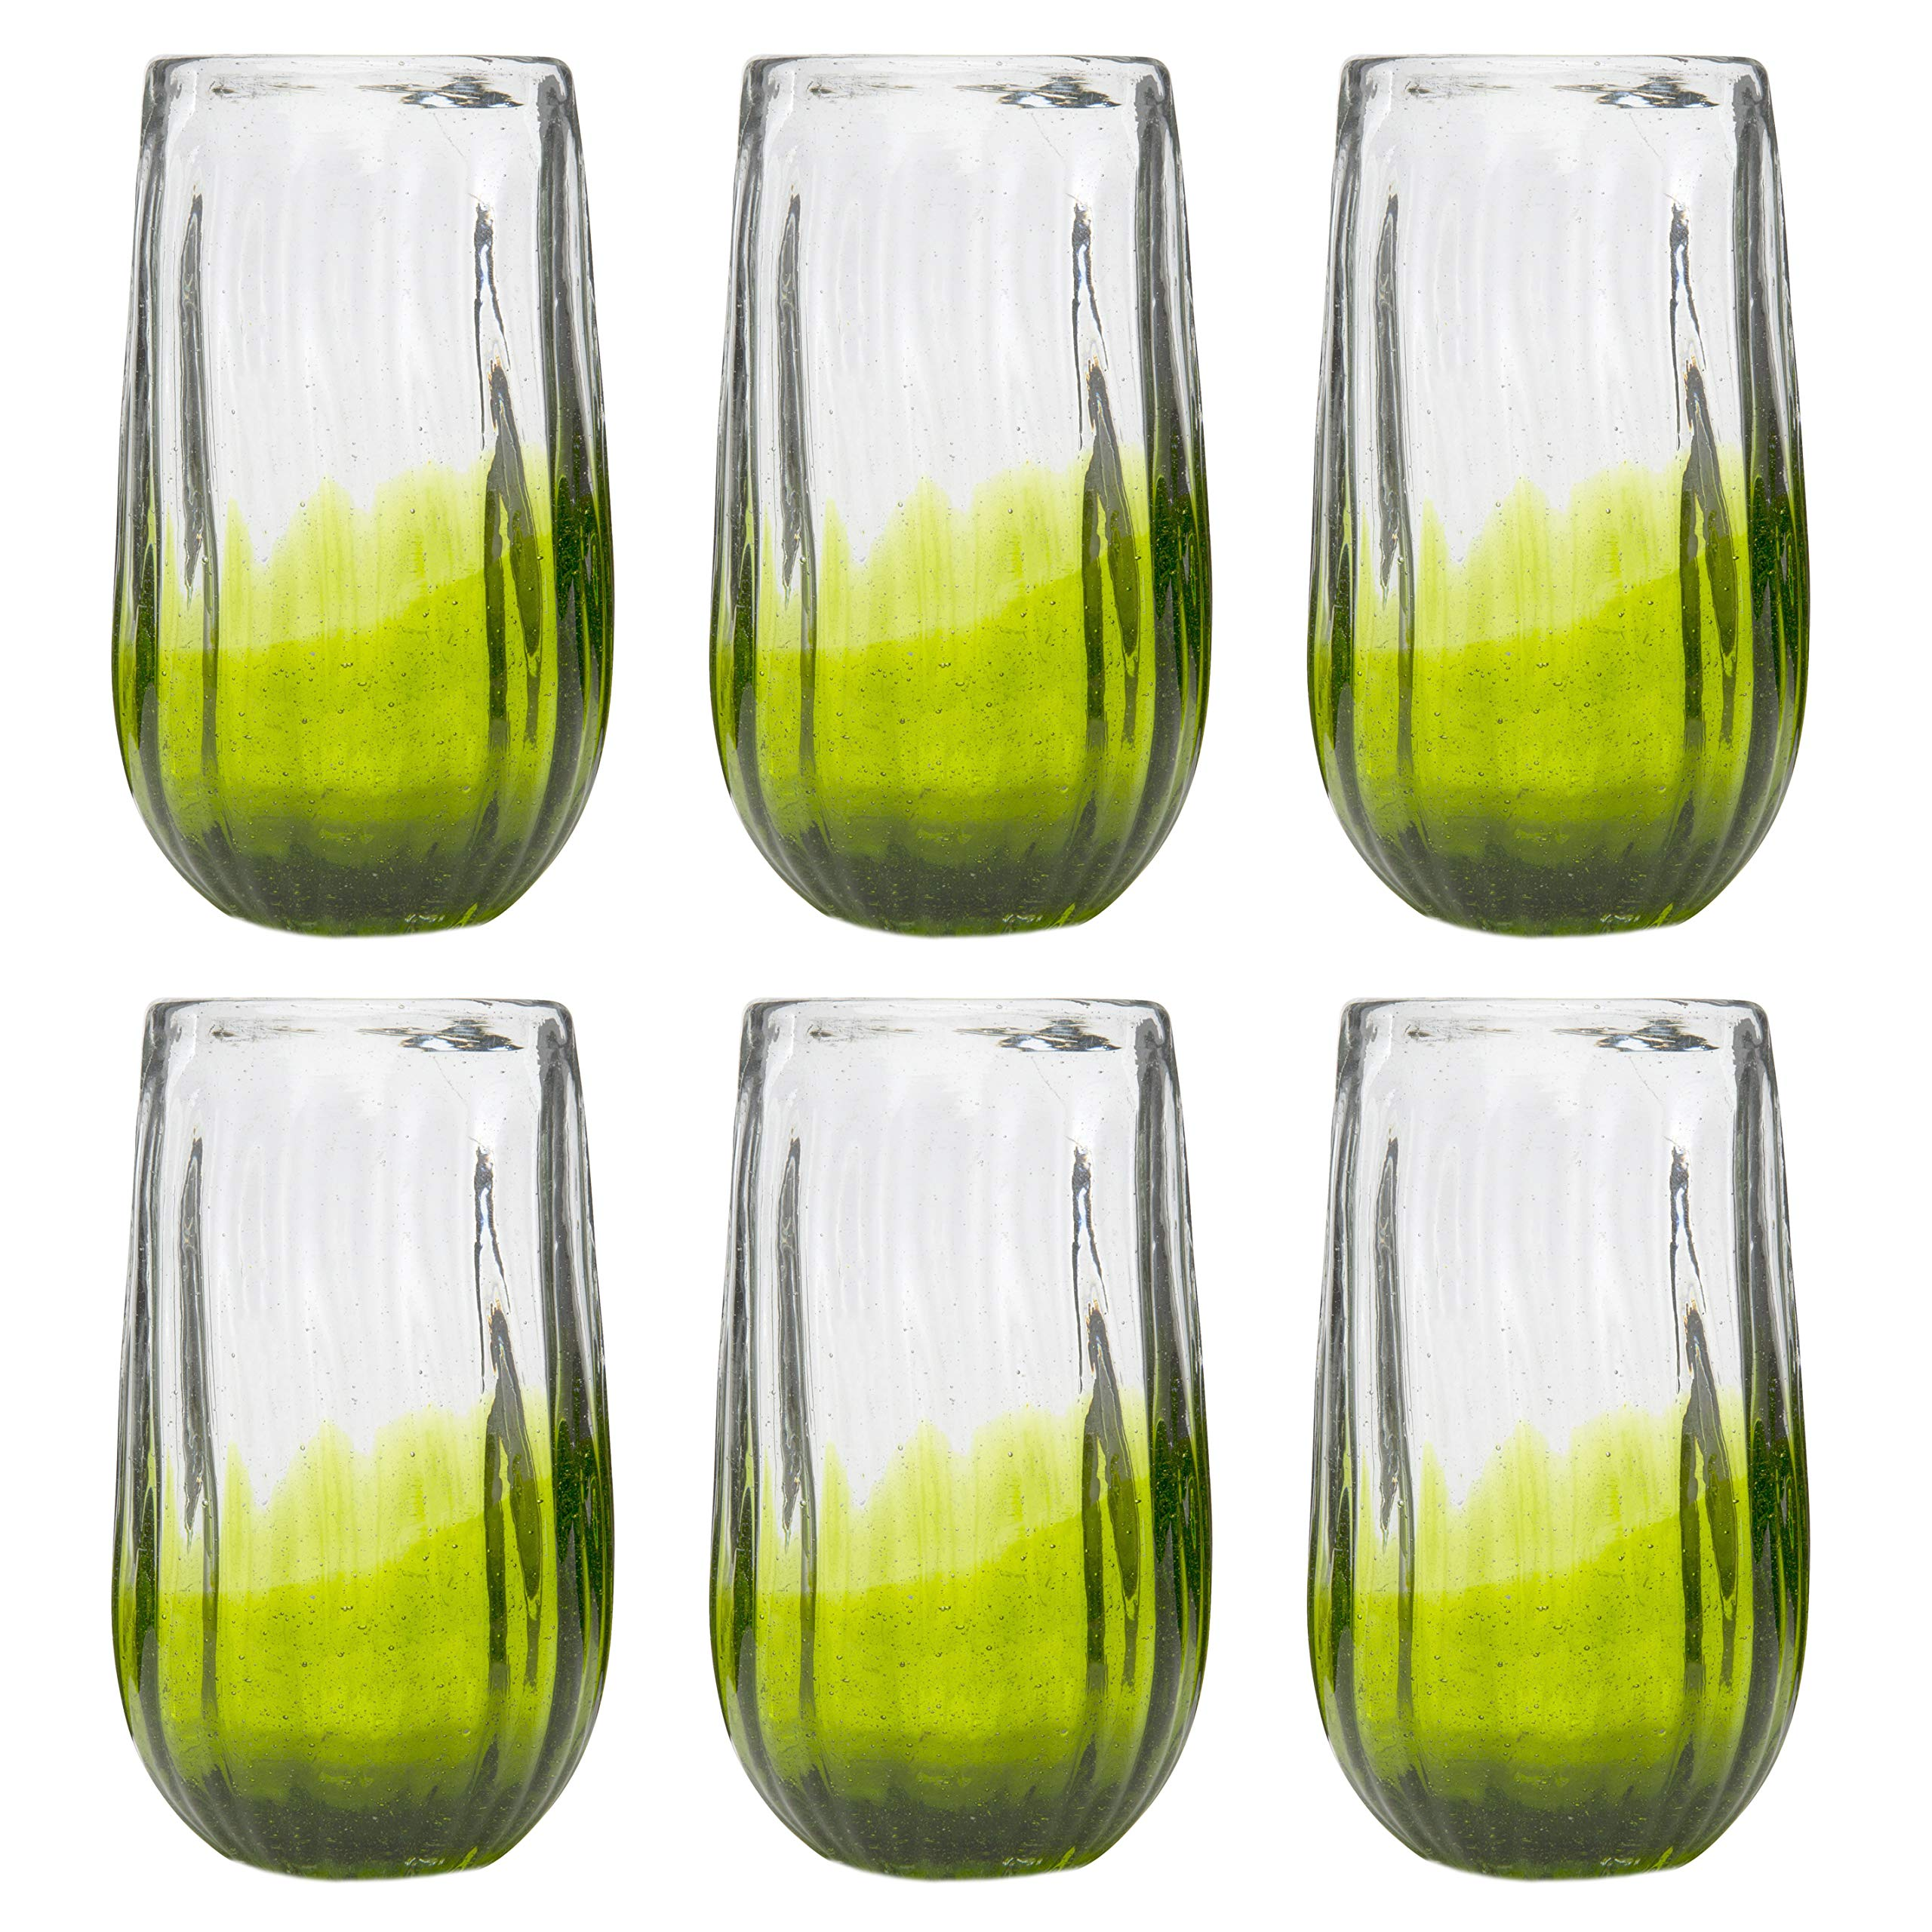 Amici Home, 7MCR069S6R, Rosa Hiball Drinking Glass, Translucent Lime Ombre, Recycled Handblown Artisanal Mexican Tabletop Glassware, 20 Ounce Capacity, Set of 6 by Amici Home